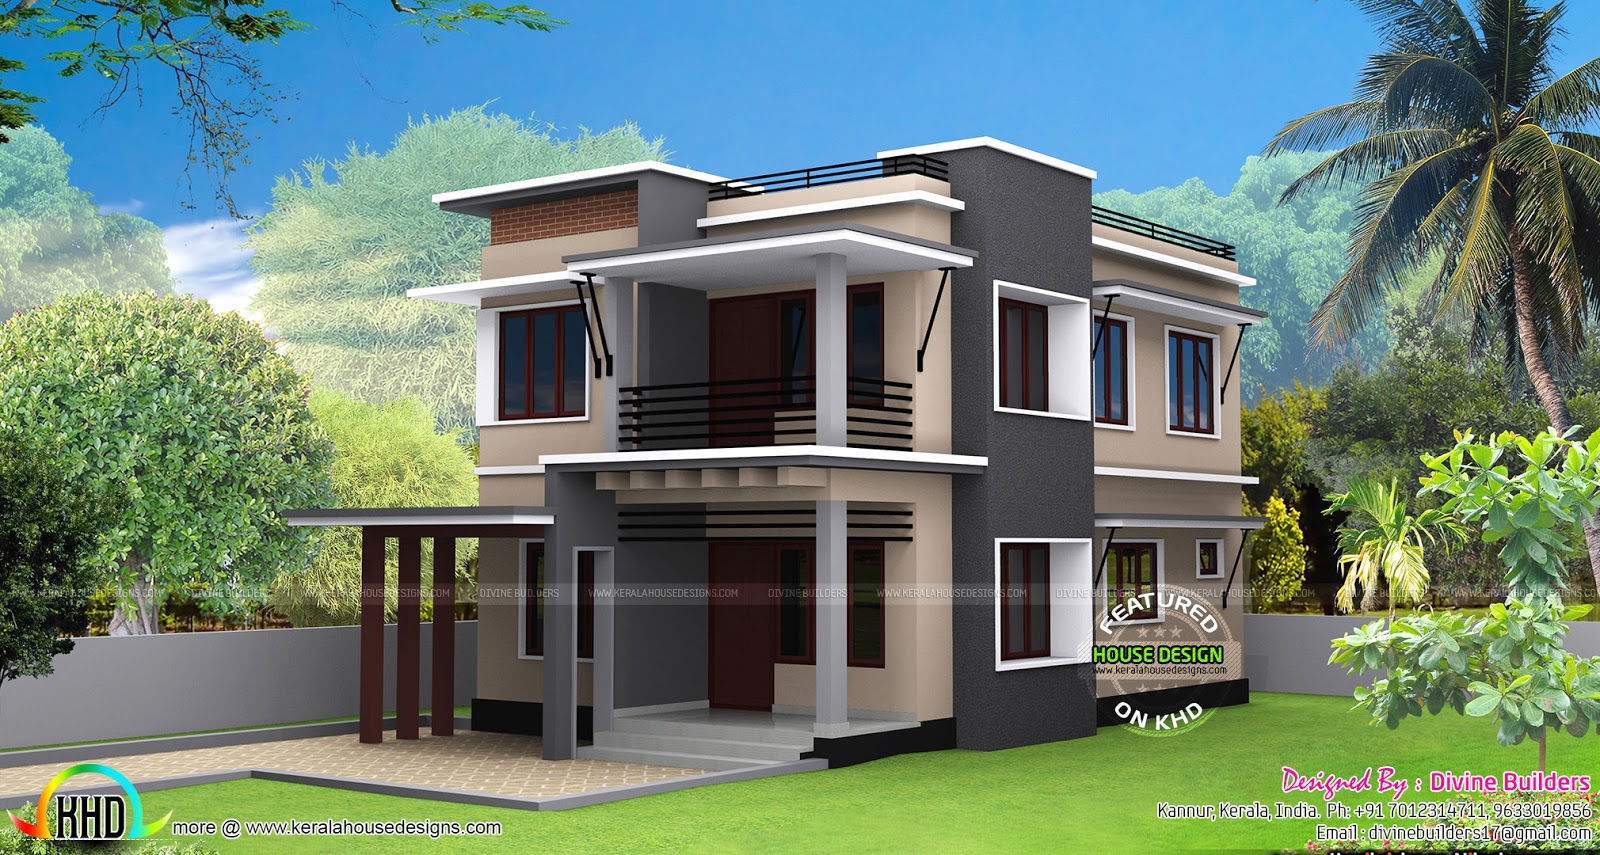 30 Lakhs Rupees Cost Estimated Modern House Kerala Home